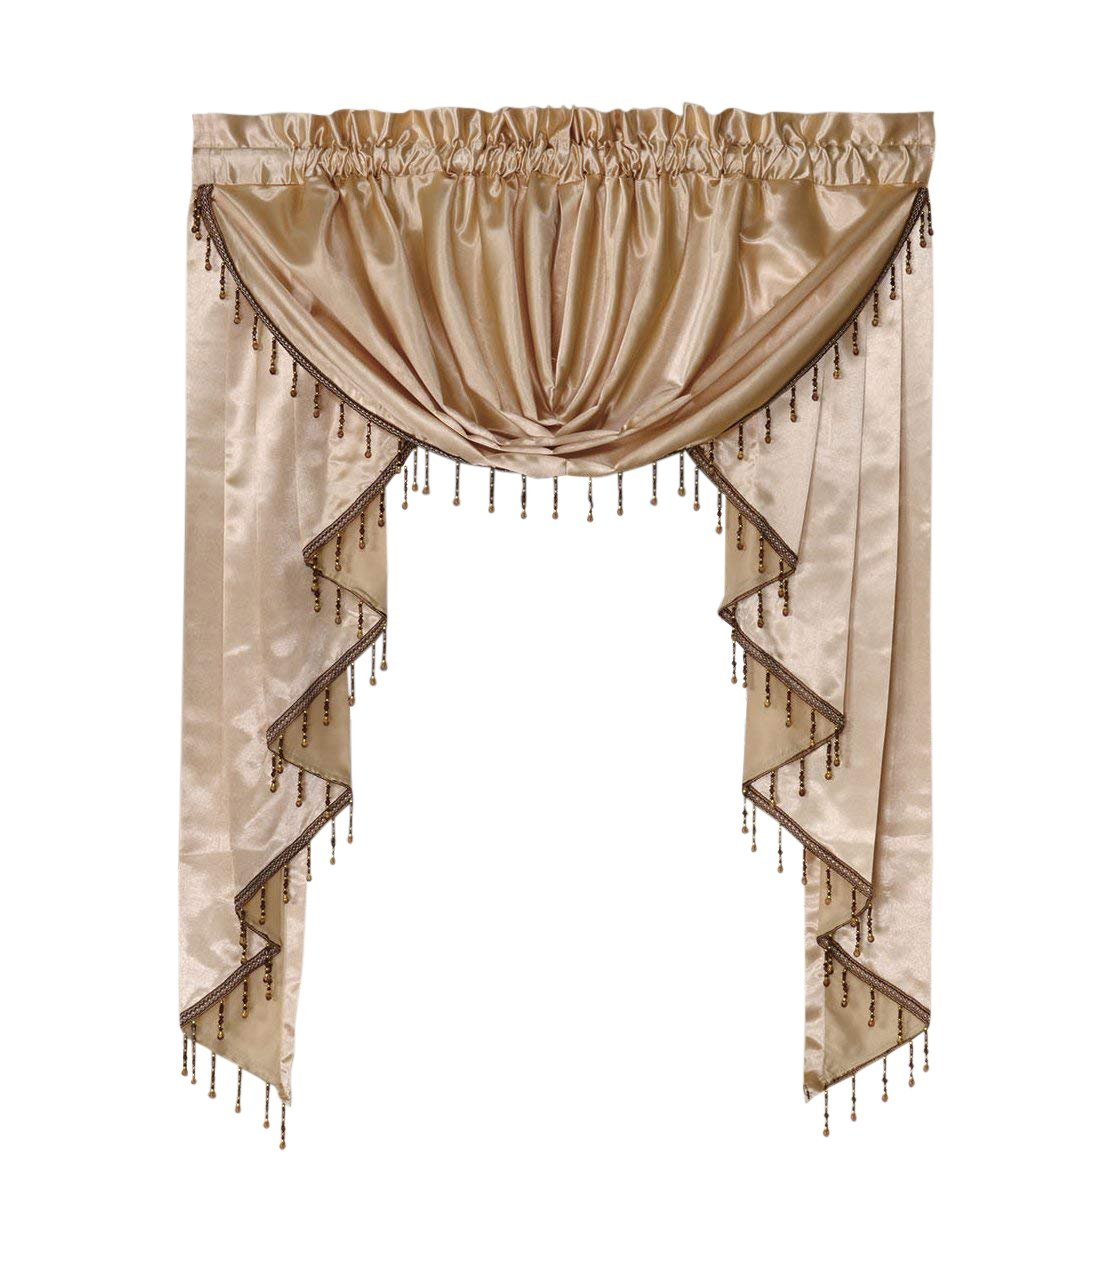 Octorose ® Royalty Custom Waterfall Window Valance Swags & Tails (Cream, swag(66x37WxH)) swag(66x37WxH))